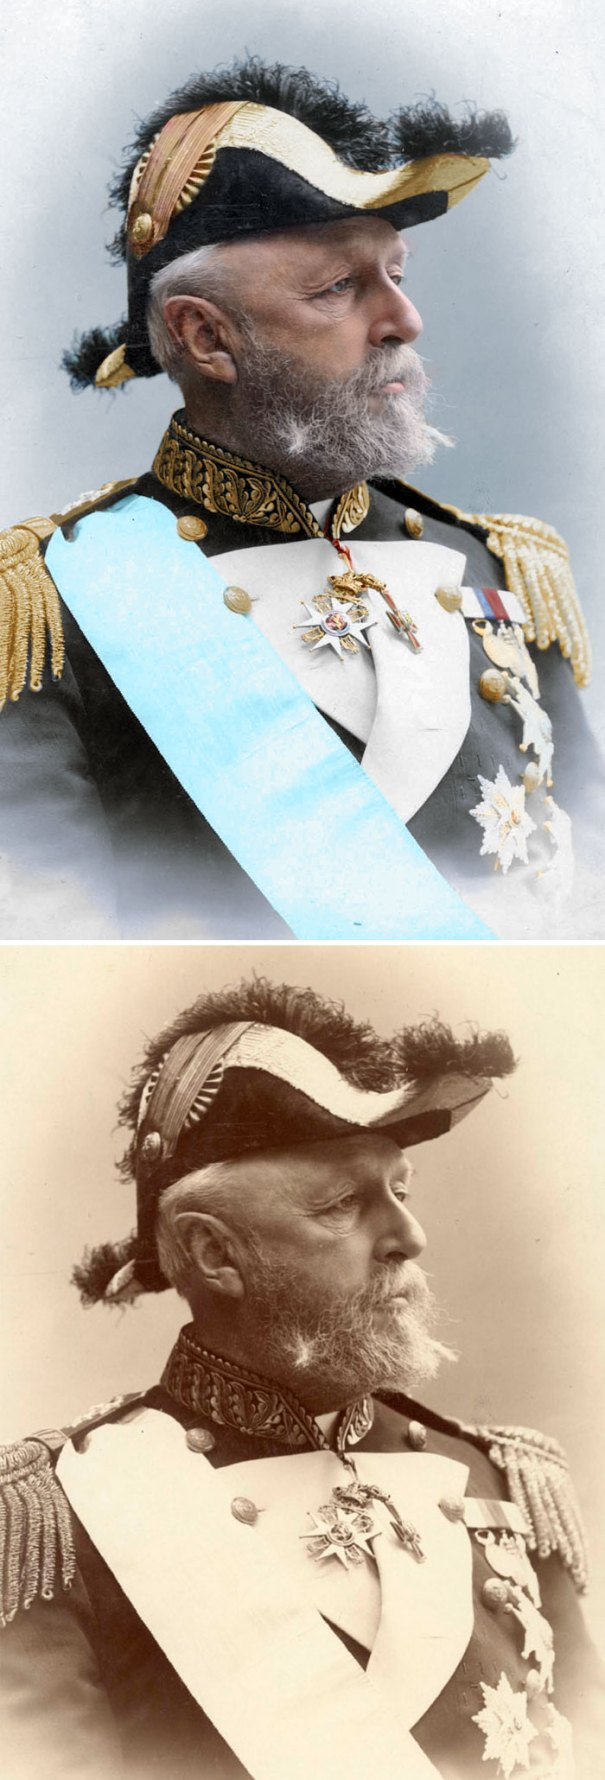 5b6d3b8fcec61-colorized-historic-photos-marina-amaral-42-5b6ada822b8d3__700 This Artist Colorizes Old Black & White Photos, And They Will Change The Way People Imagine History Photography Random